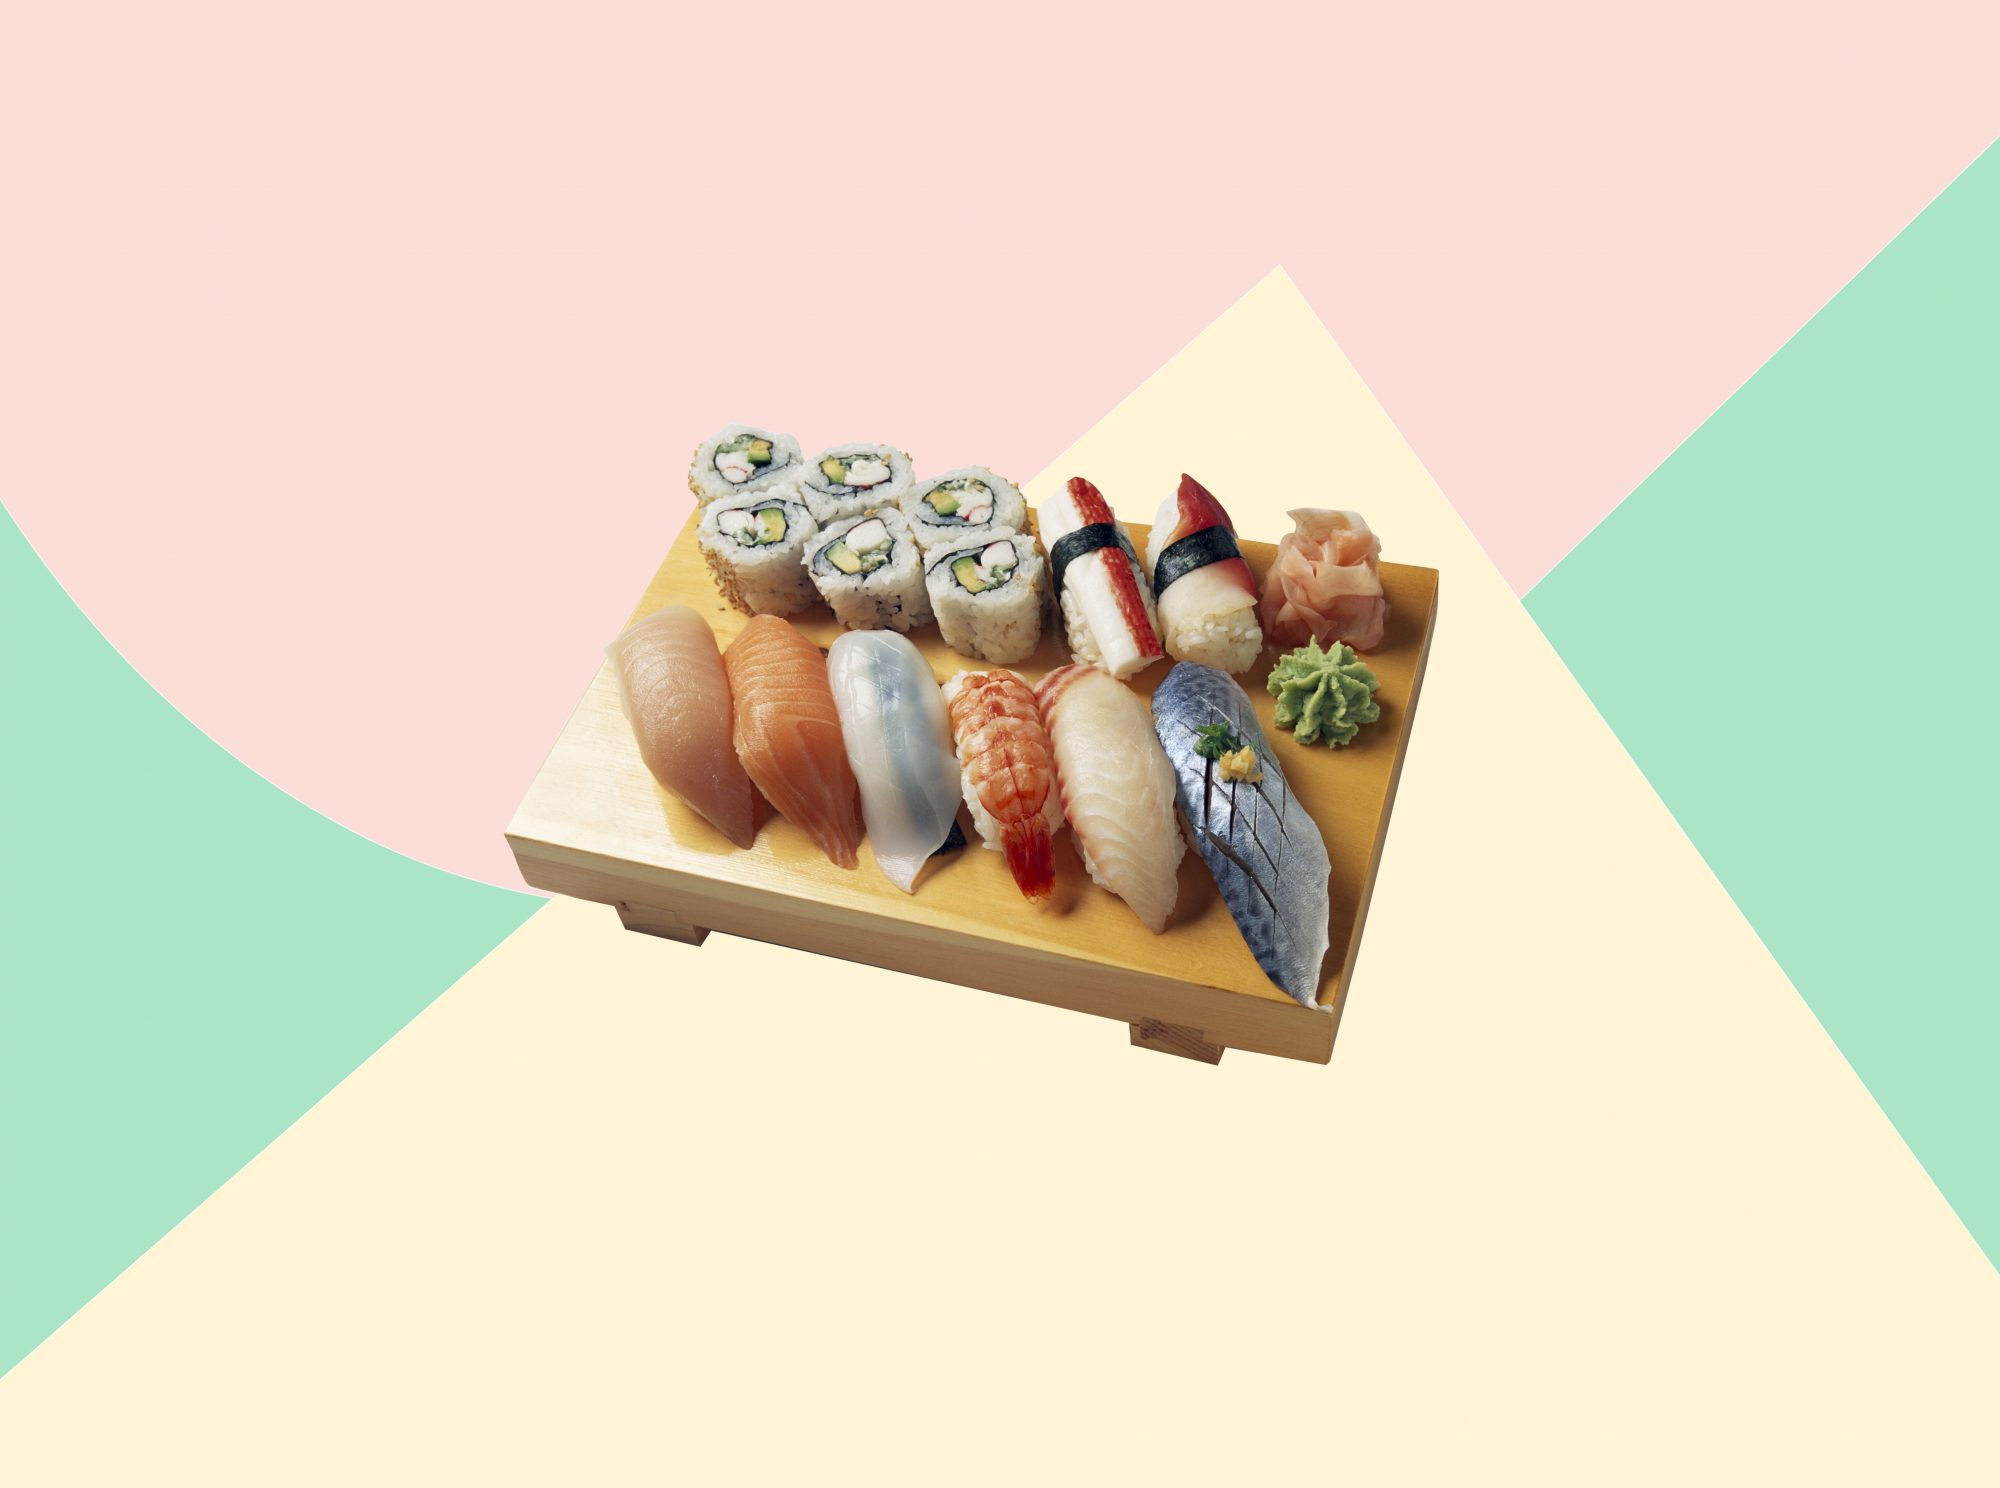 This Is the Best—and Only—Way to Eat Sushi, According to a Renowned Sushi Chef